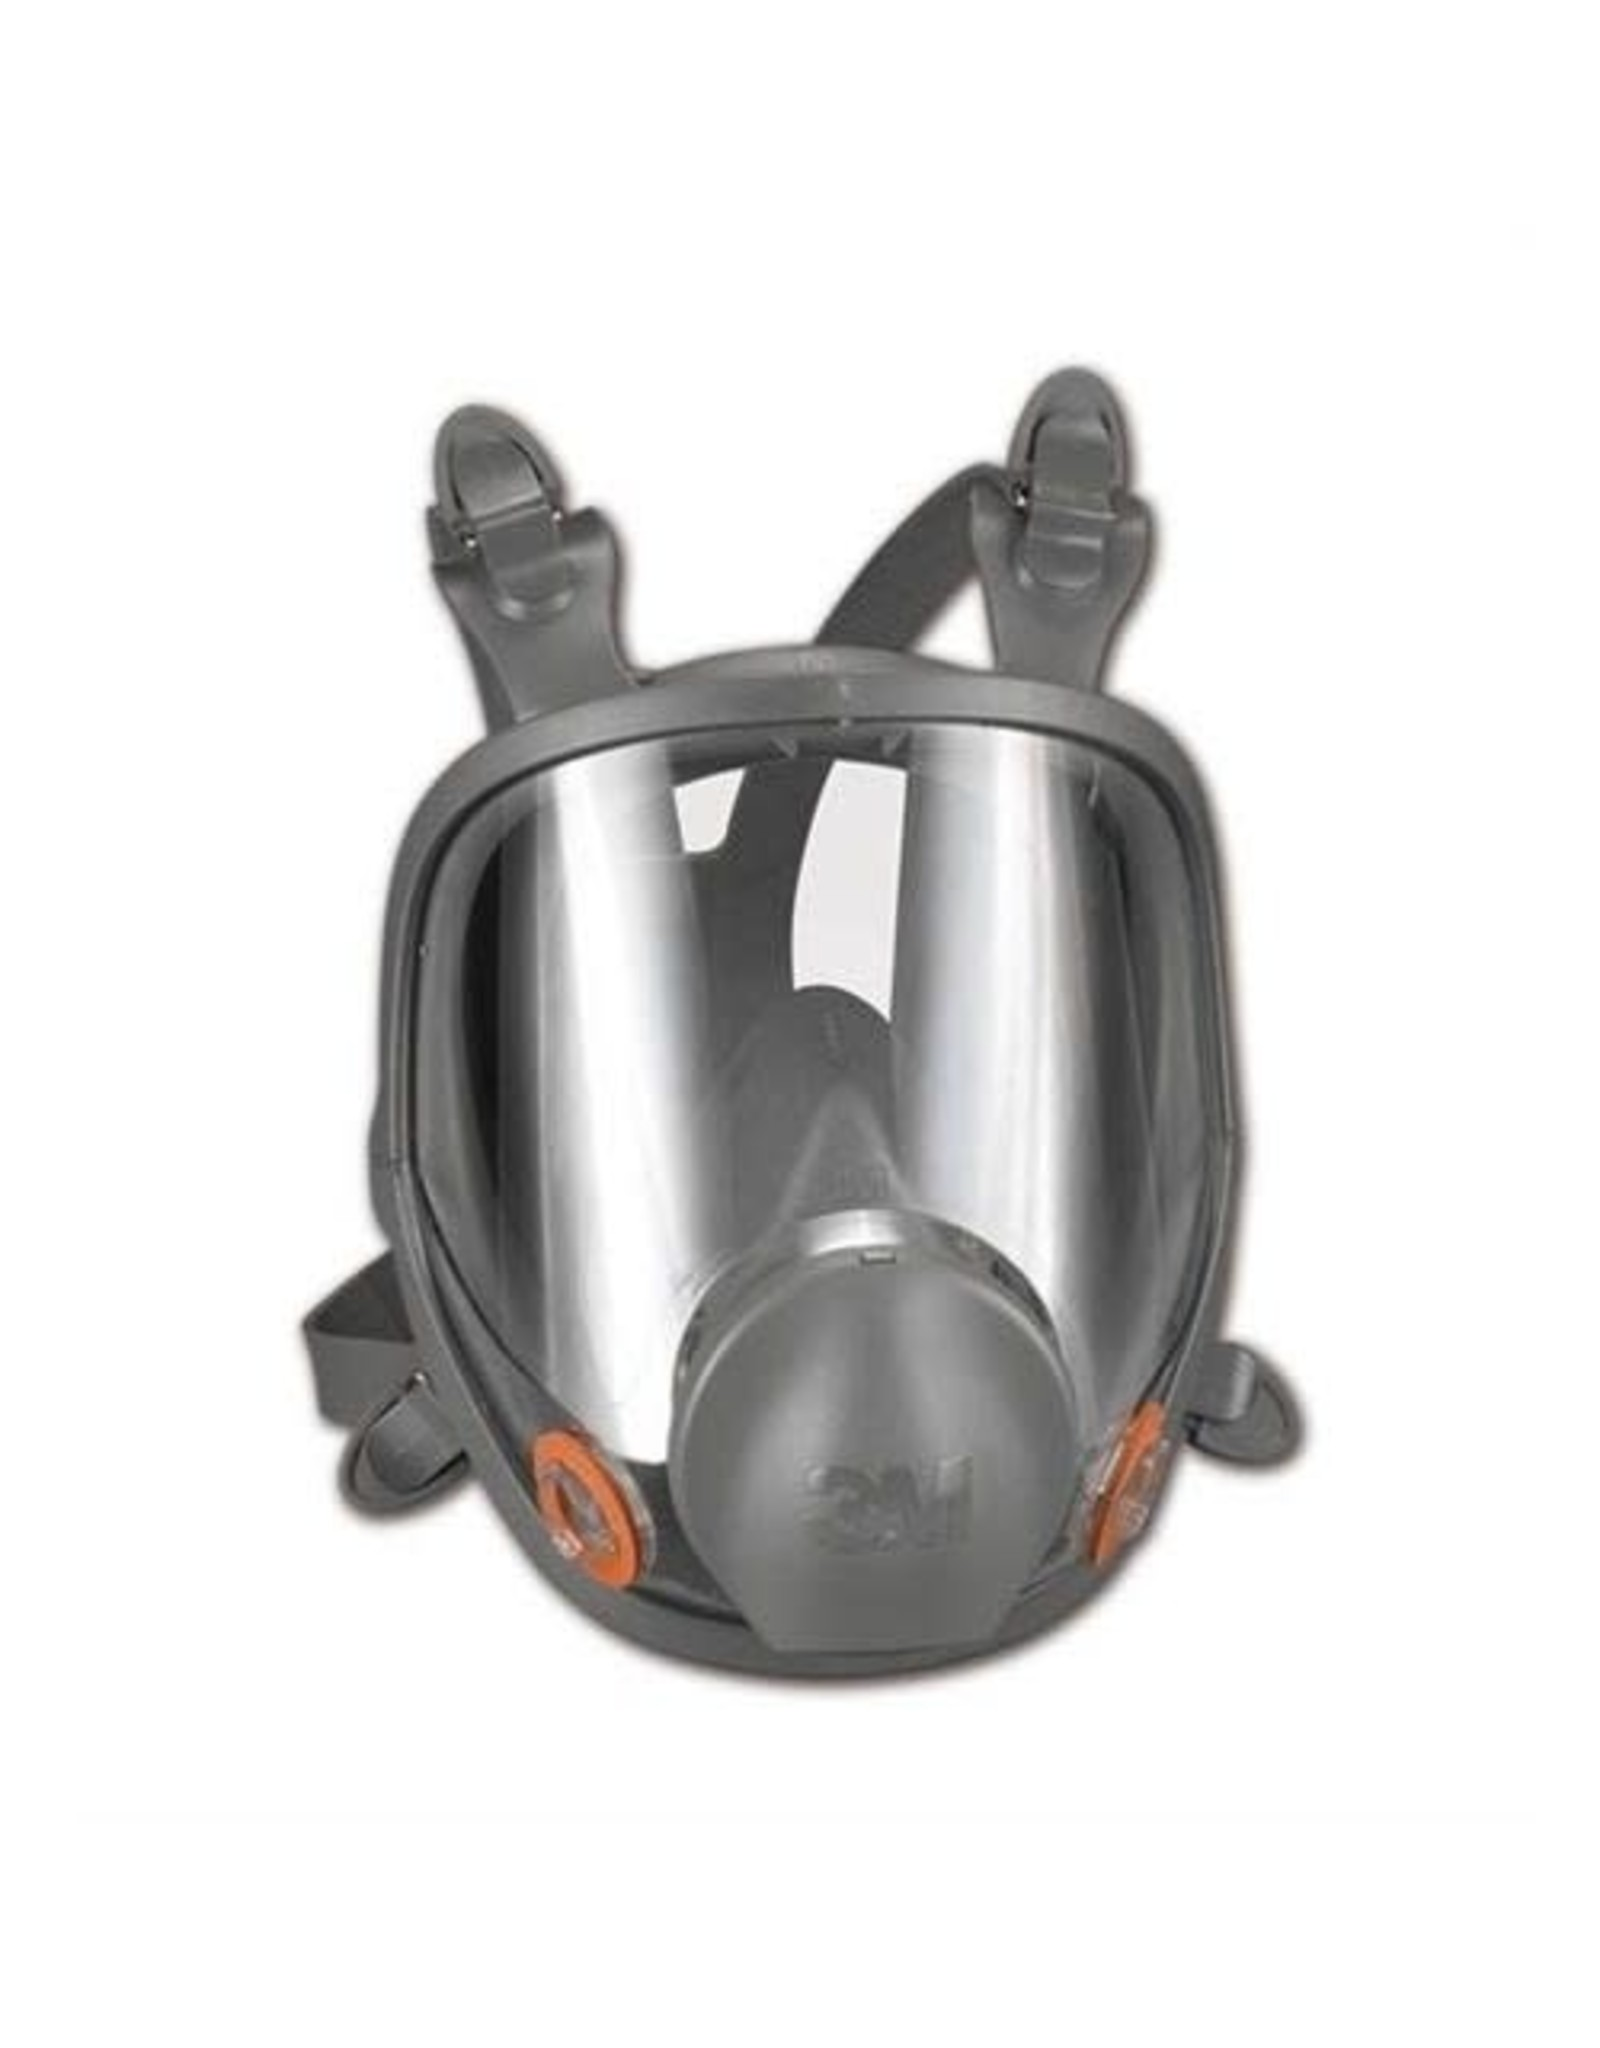 3M 3M Full Facepiece Reusable Respirators 6000 Series, Without Filters